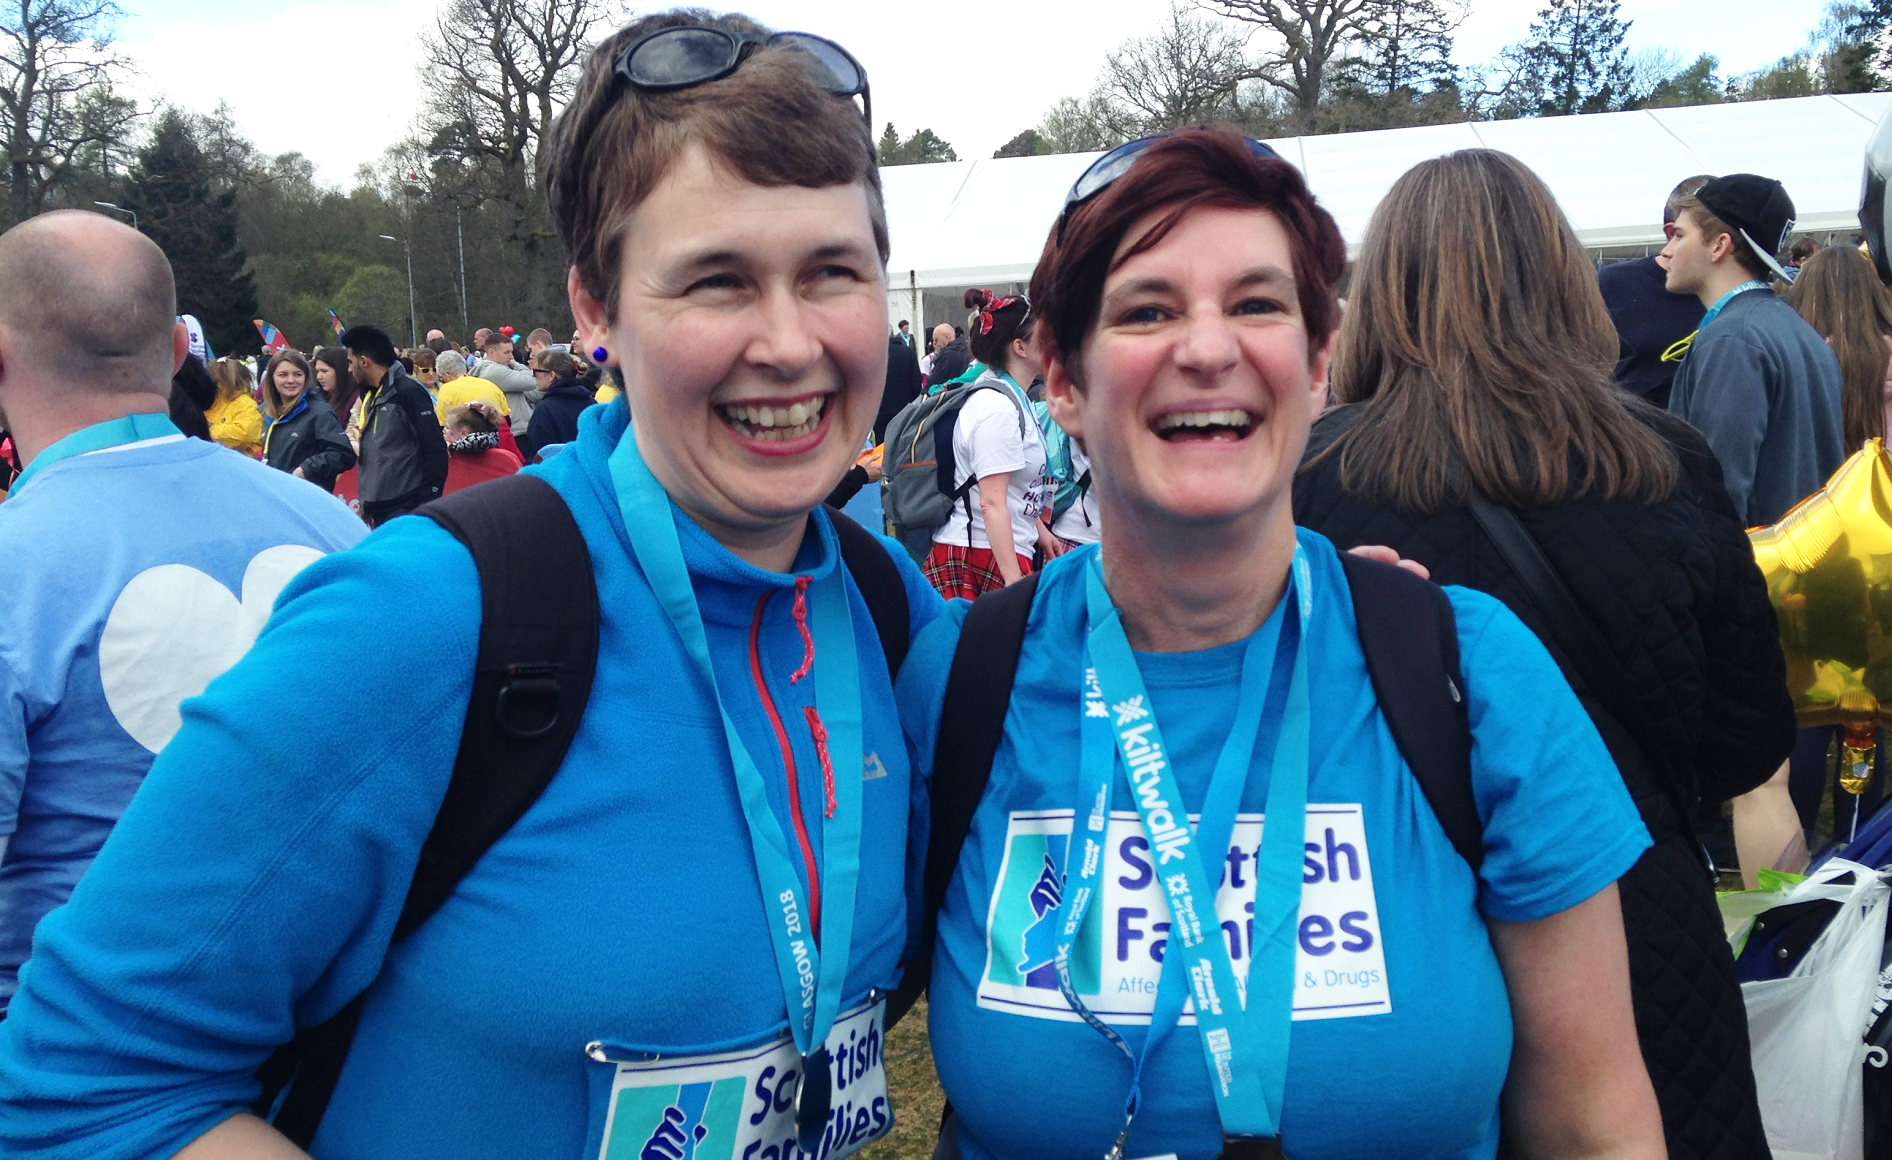 Two women with medals at Kiltwalk